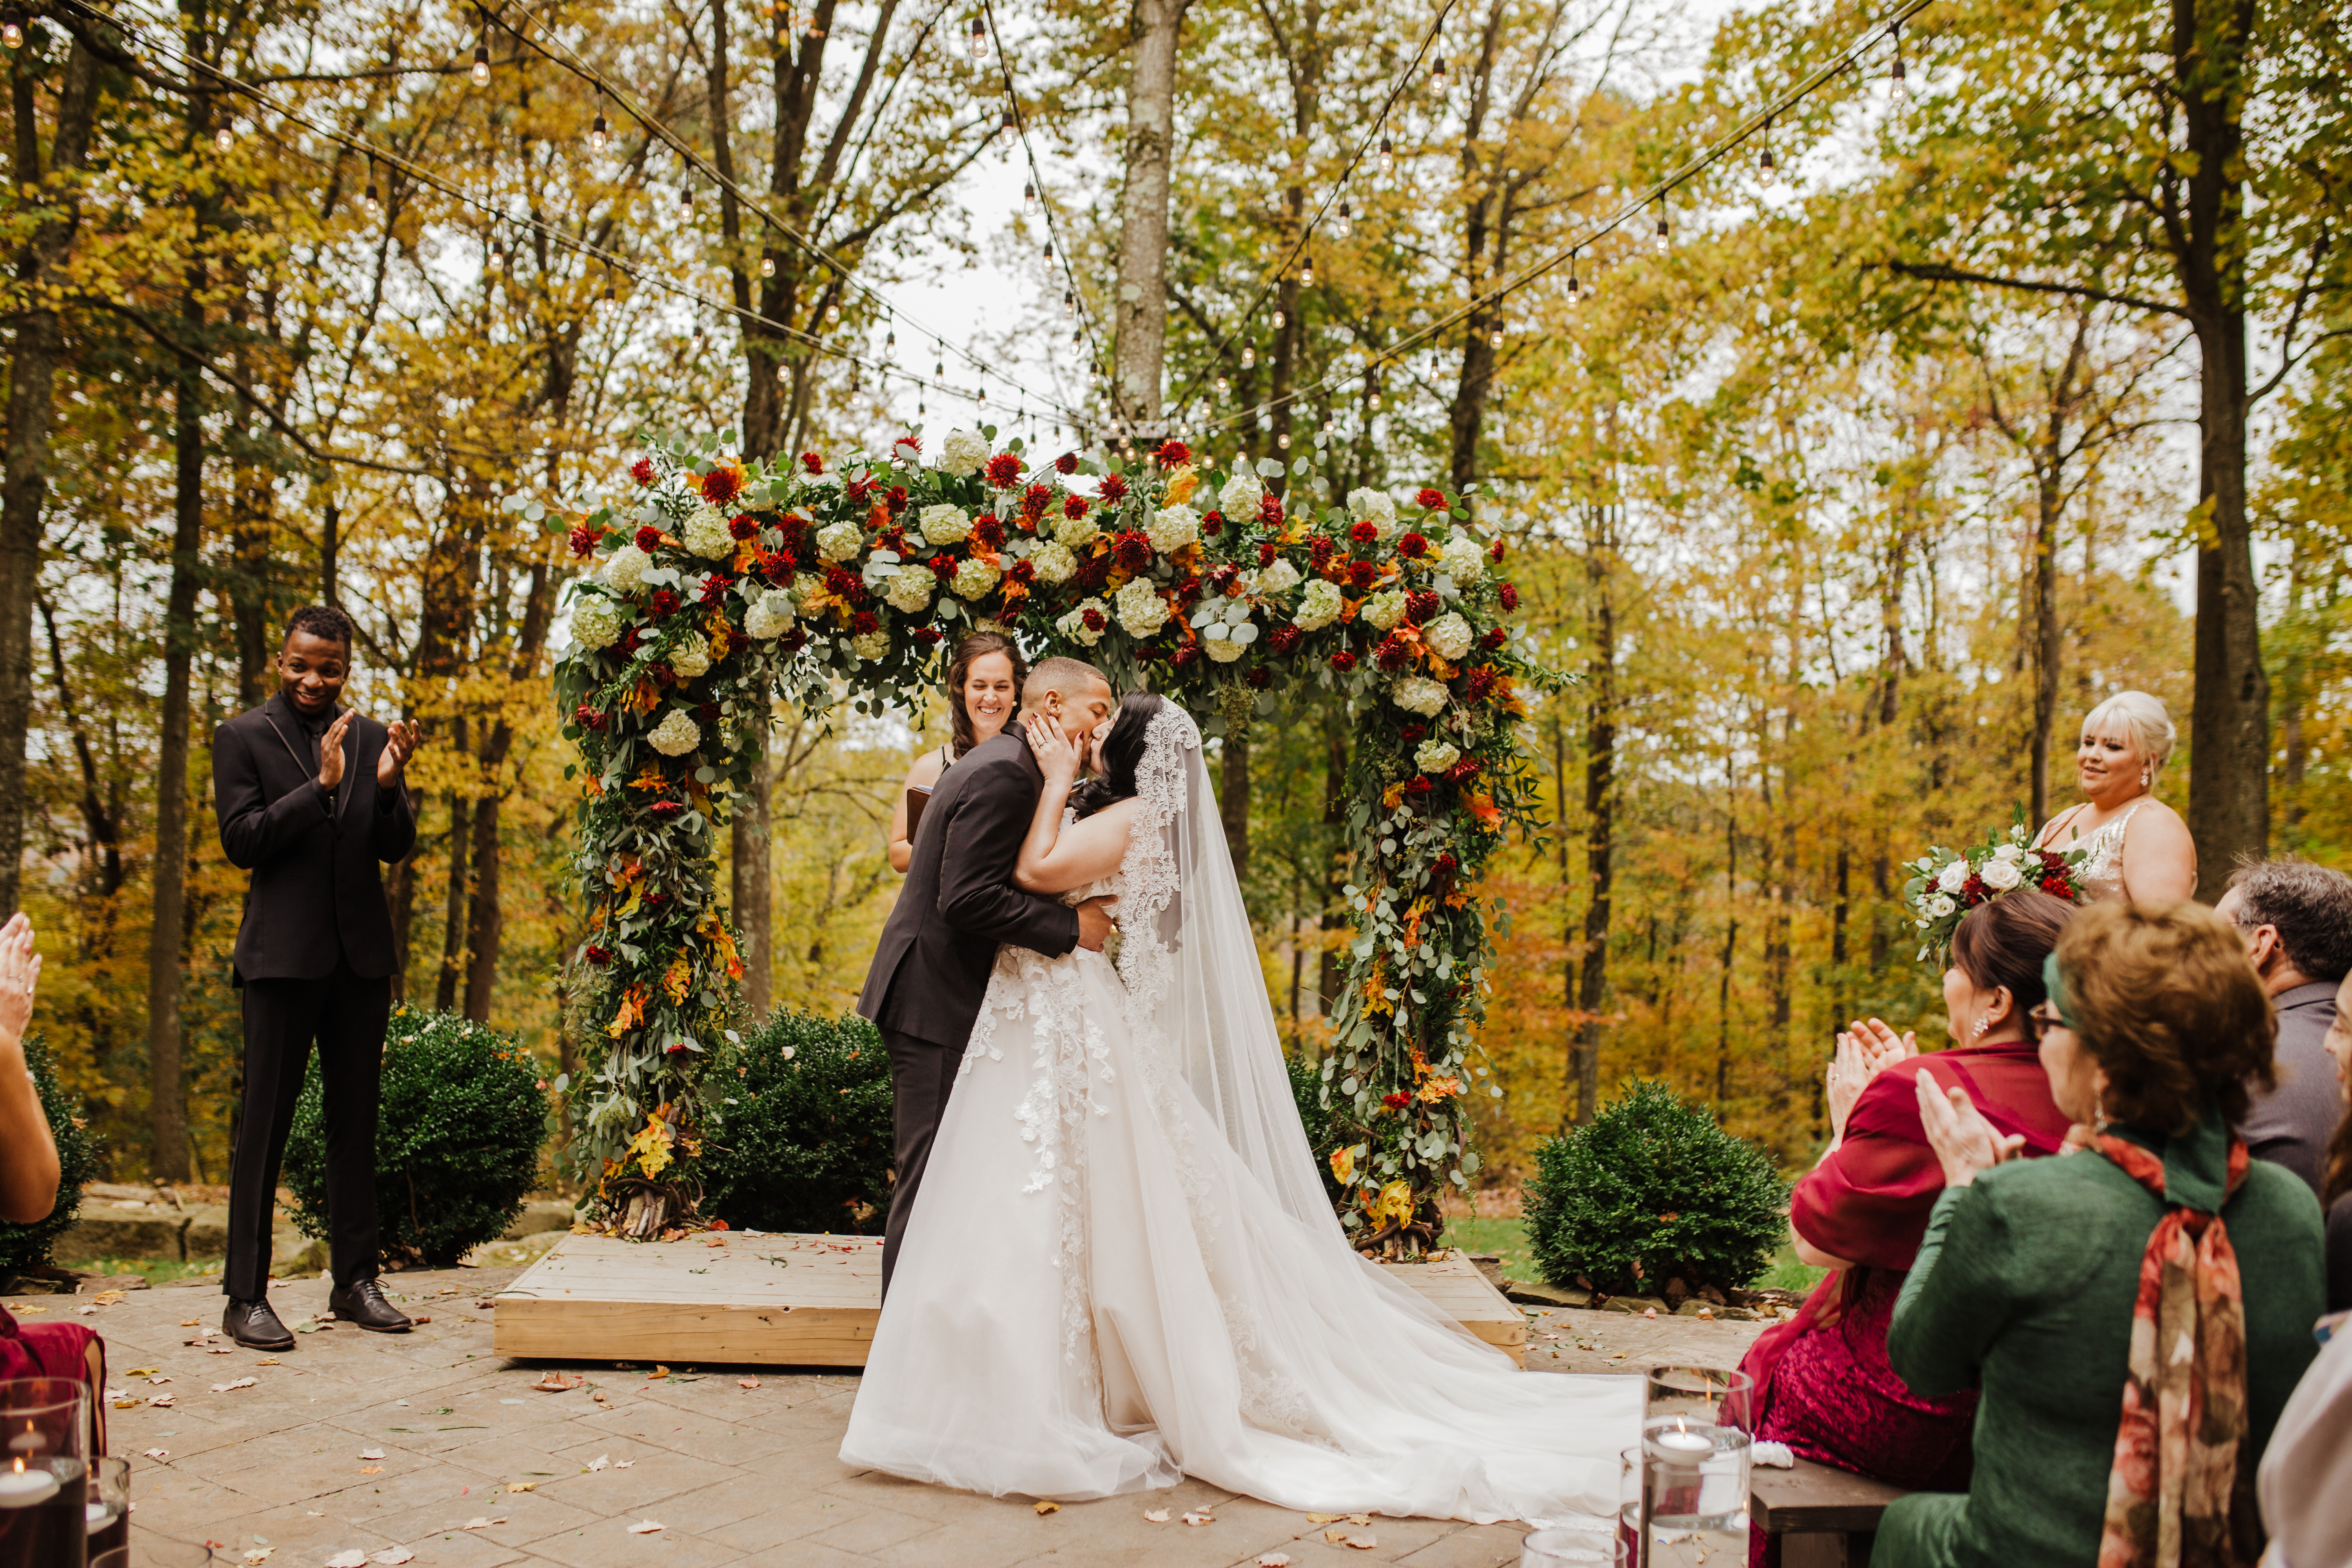 Lindsay Dawn Photography - Northeast Ohio Wedding & Destination Wedding Photographer